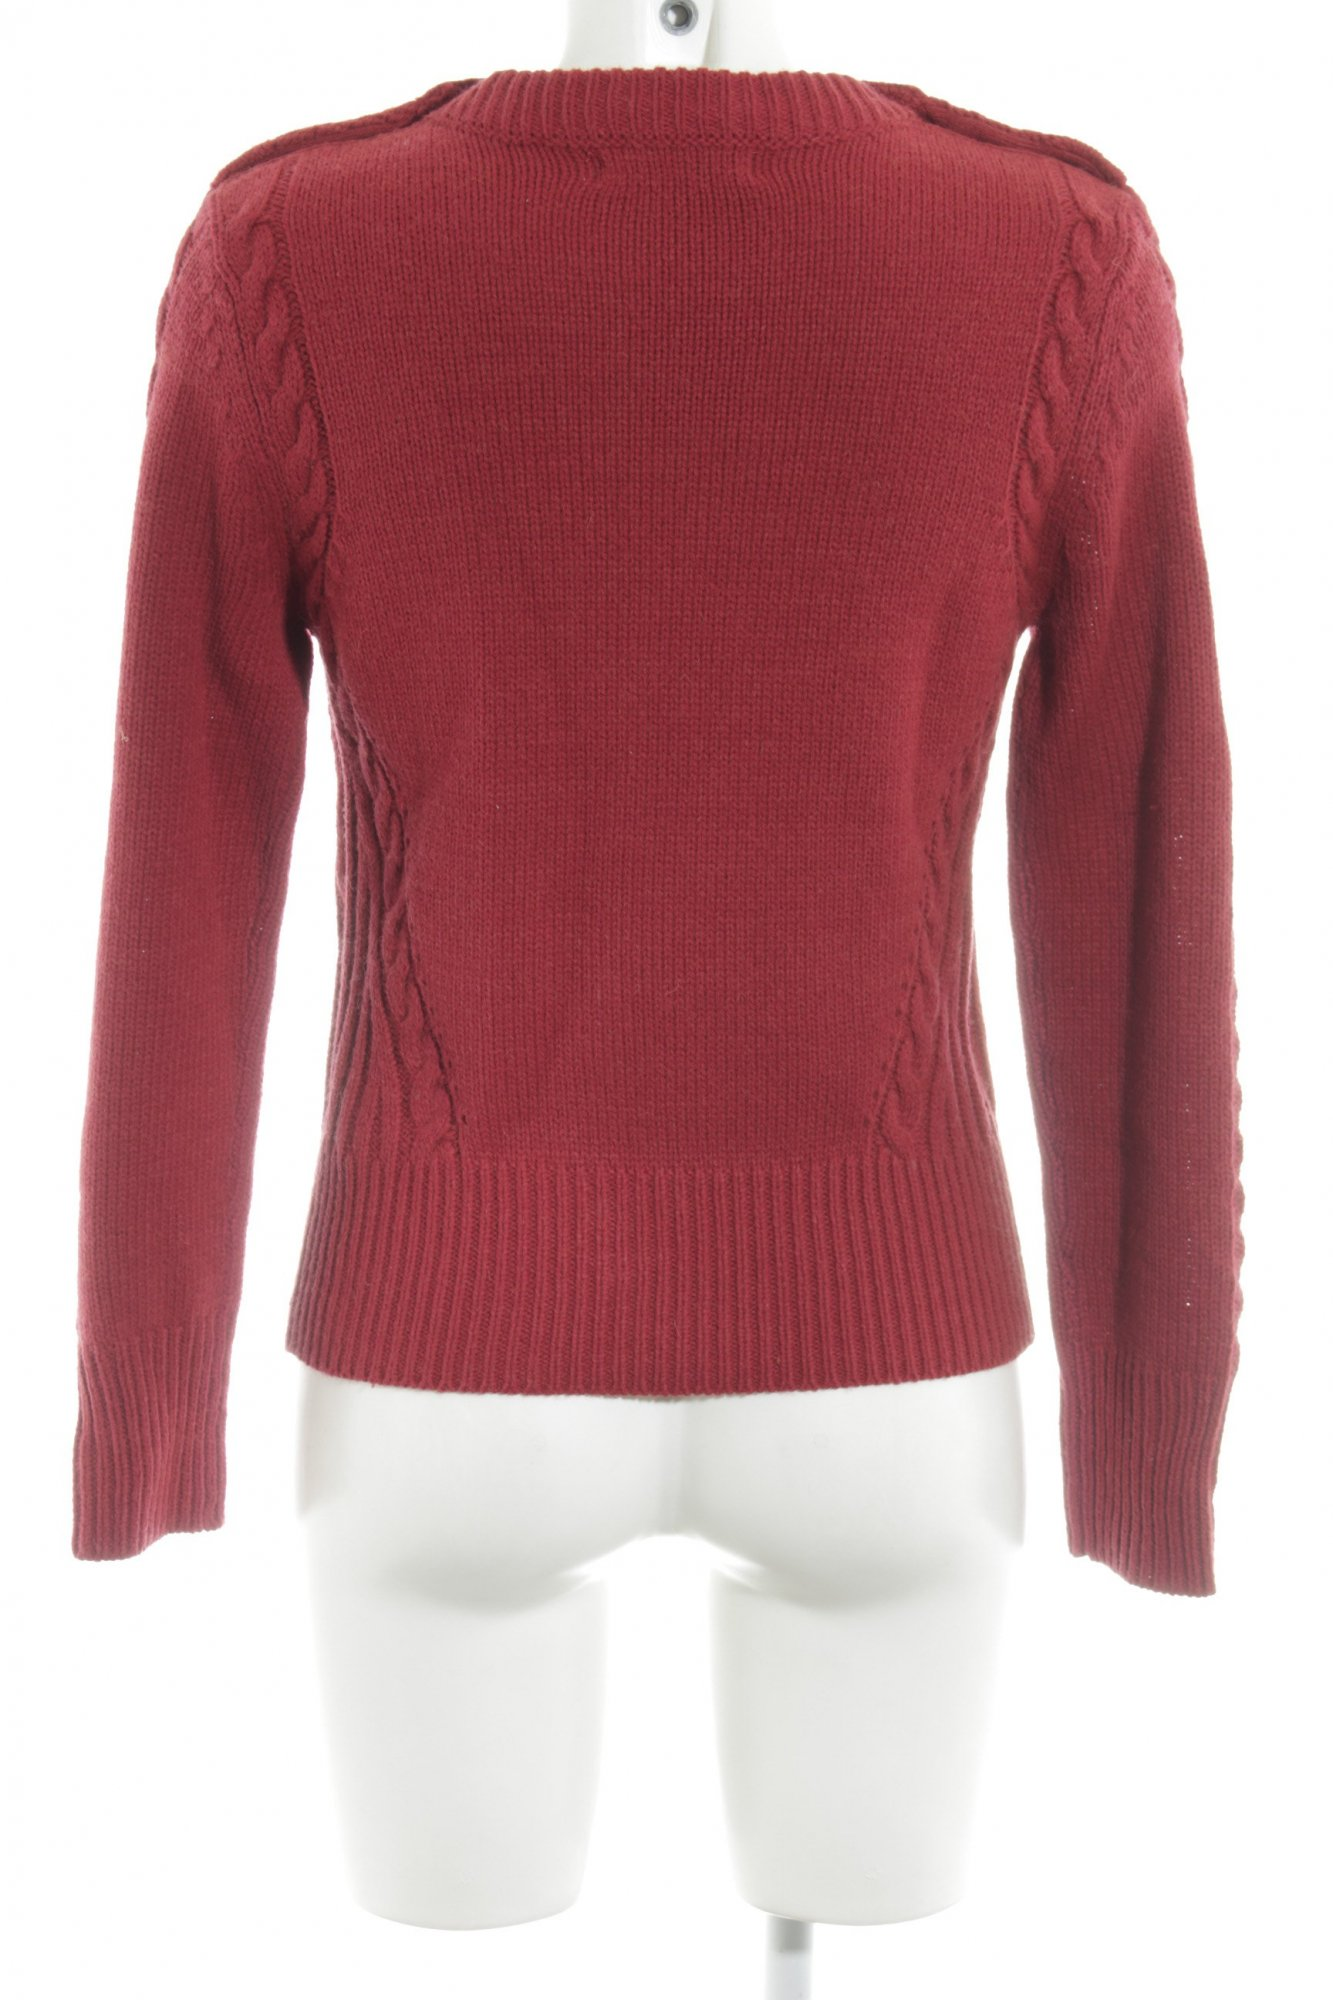 sports shoes 26ffb dc4ca Details zu M&S Strickpullover rot Zopfmuster Casual-Look Damen Gr. DE 36  Pullover Sweater